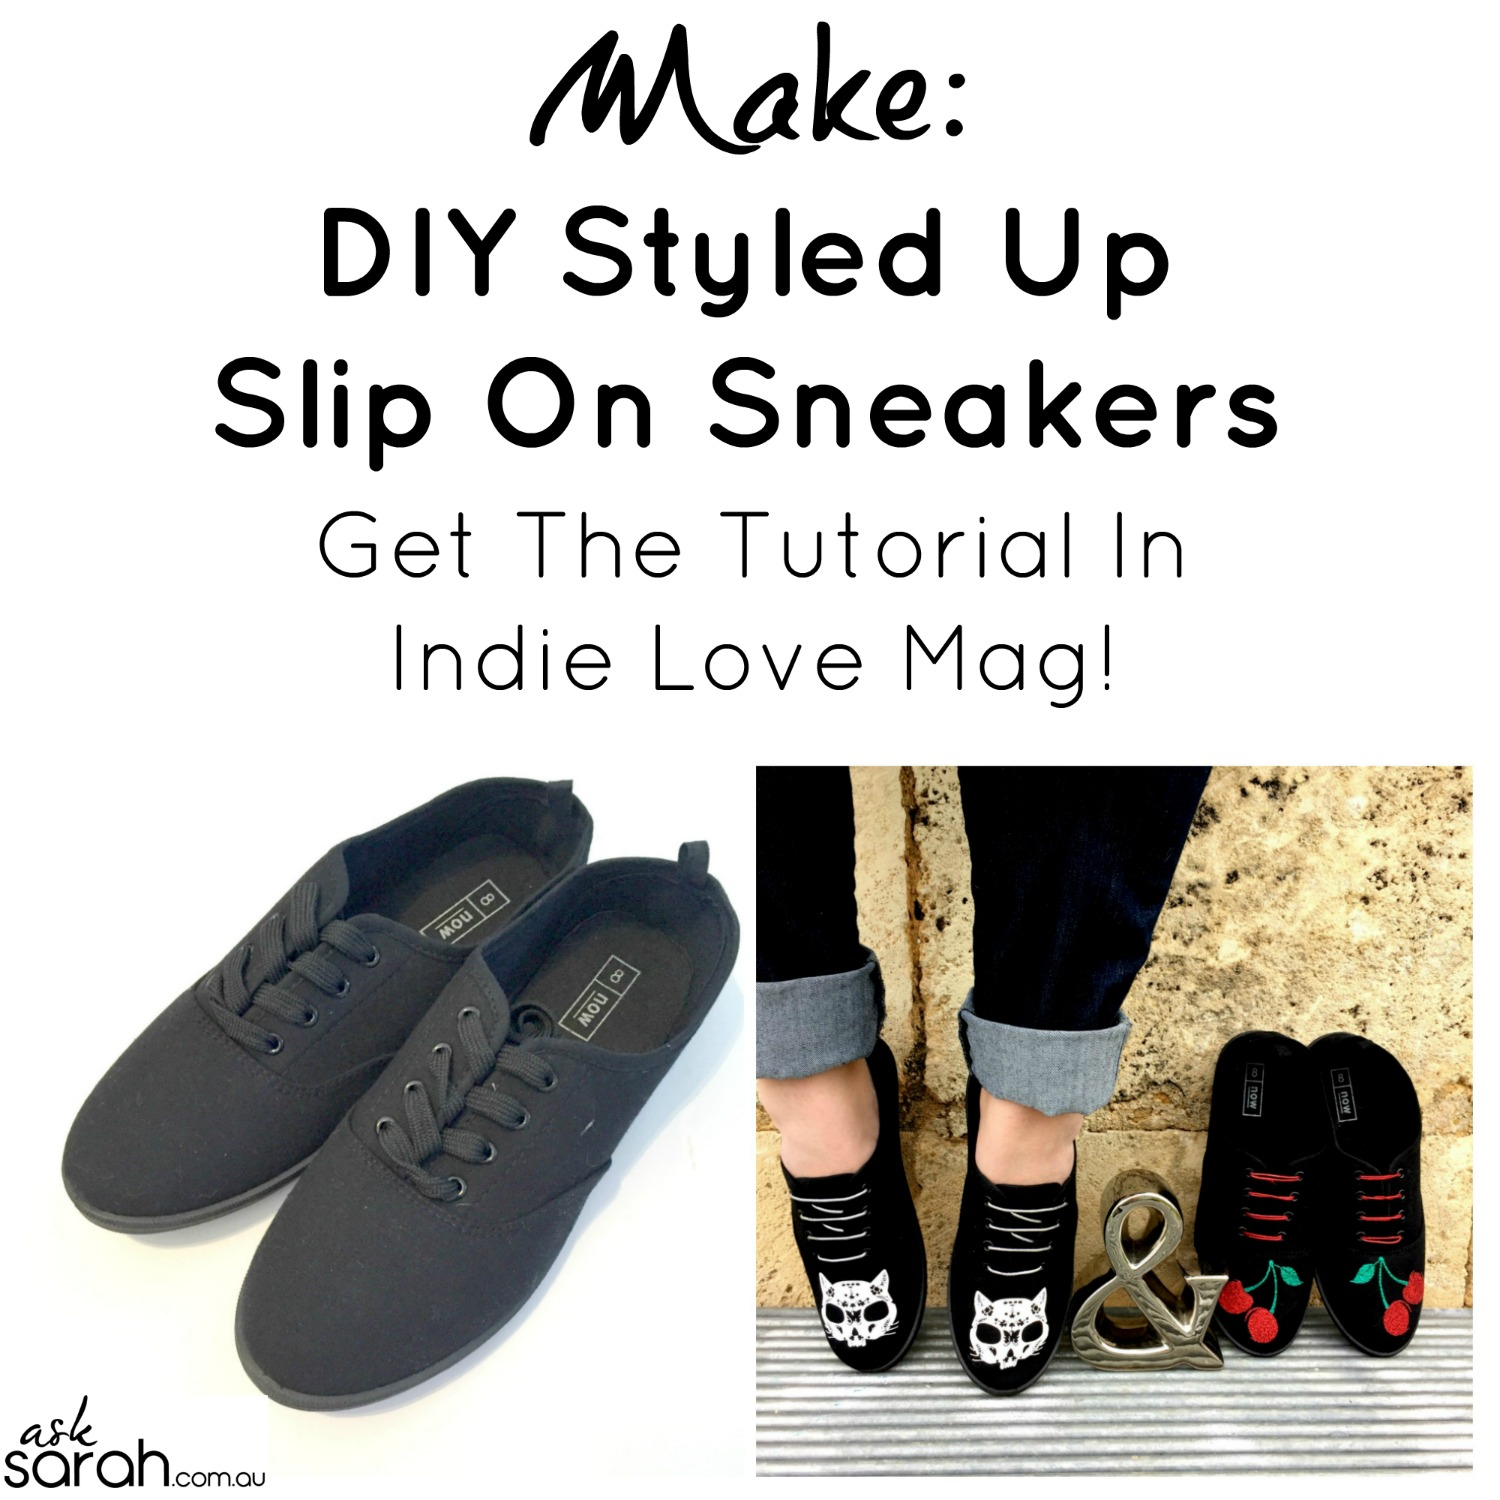 make-diy-styled-up-slip-on-sneakers-get-the-tutorial-in-indie-love-mag